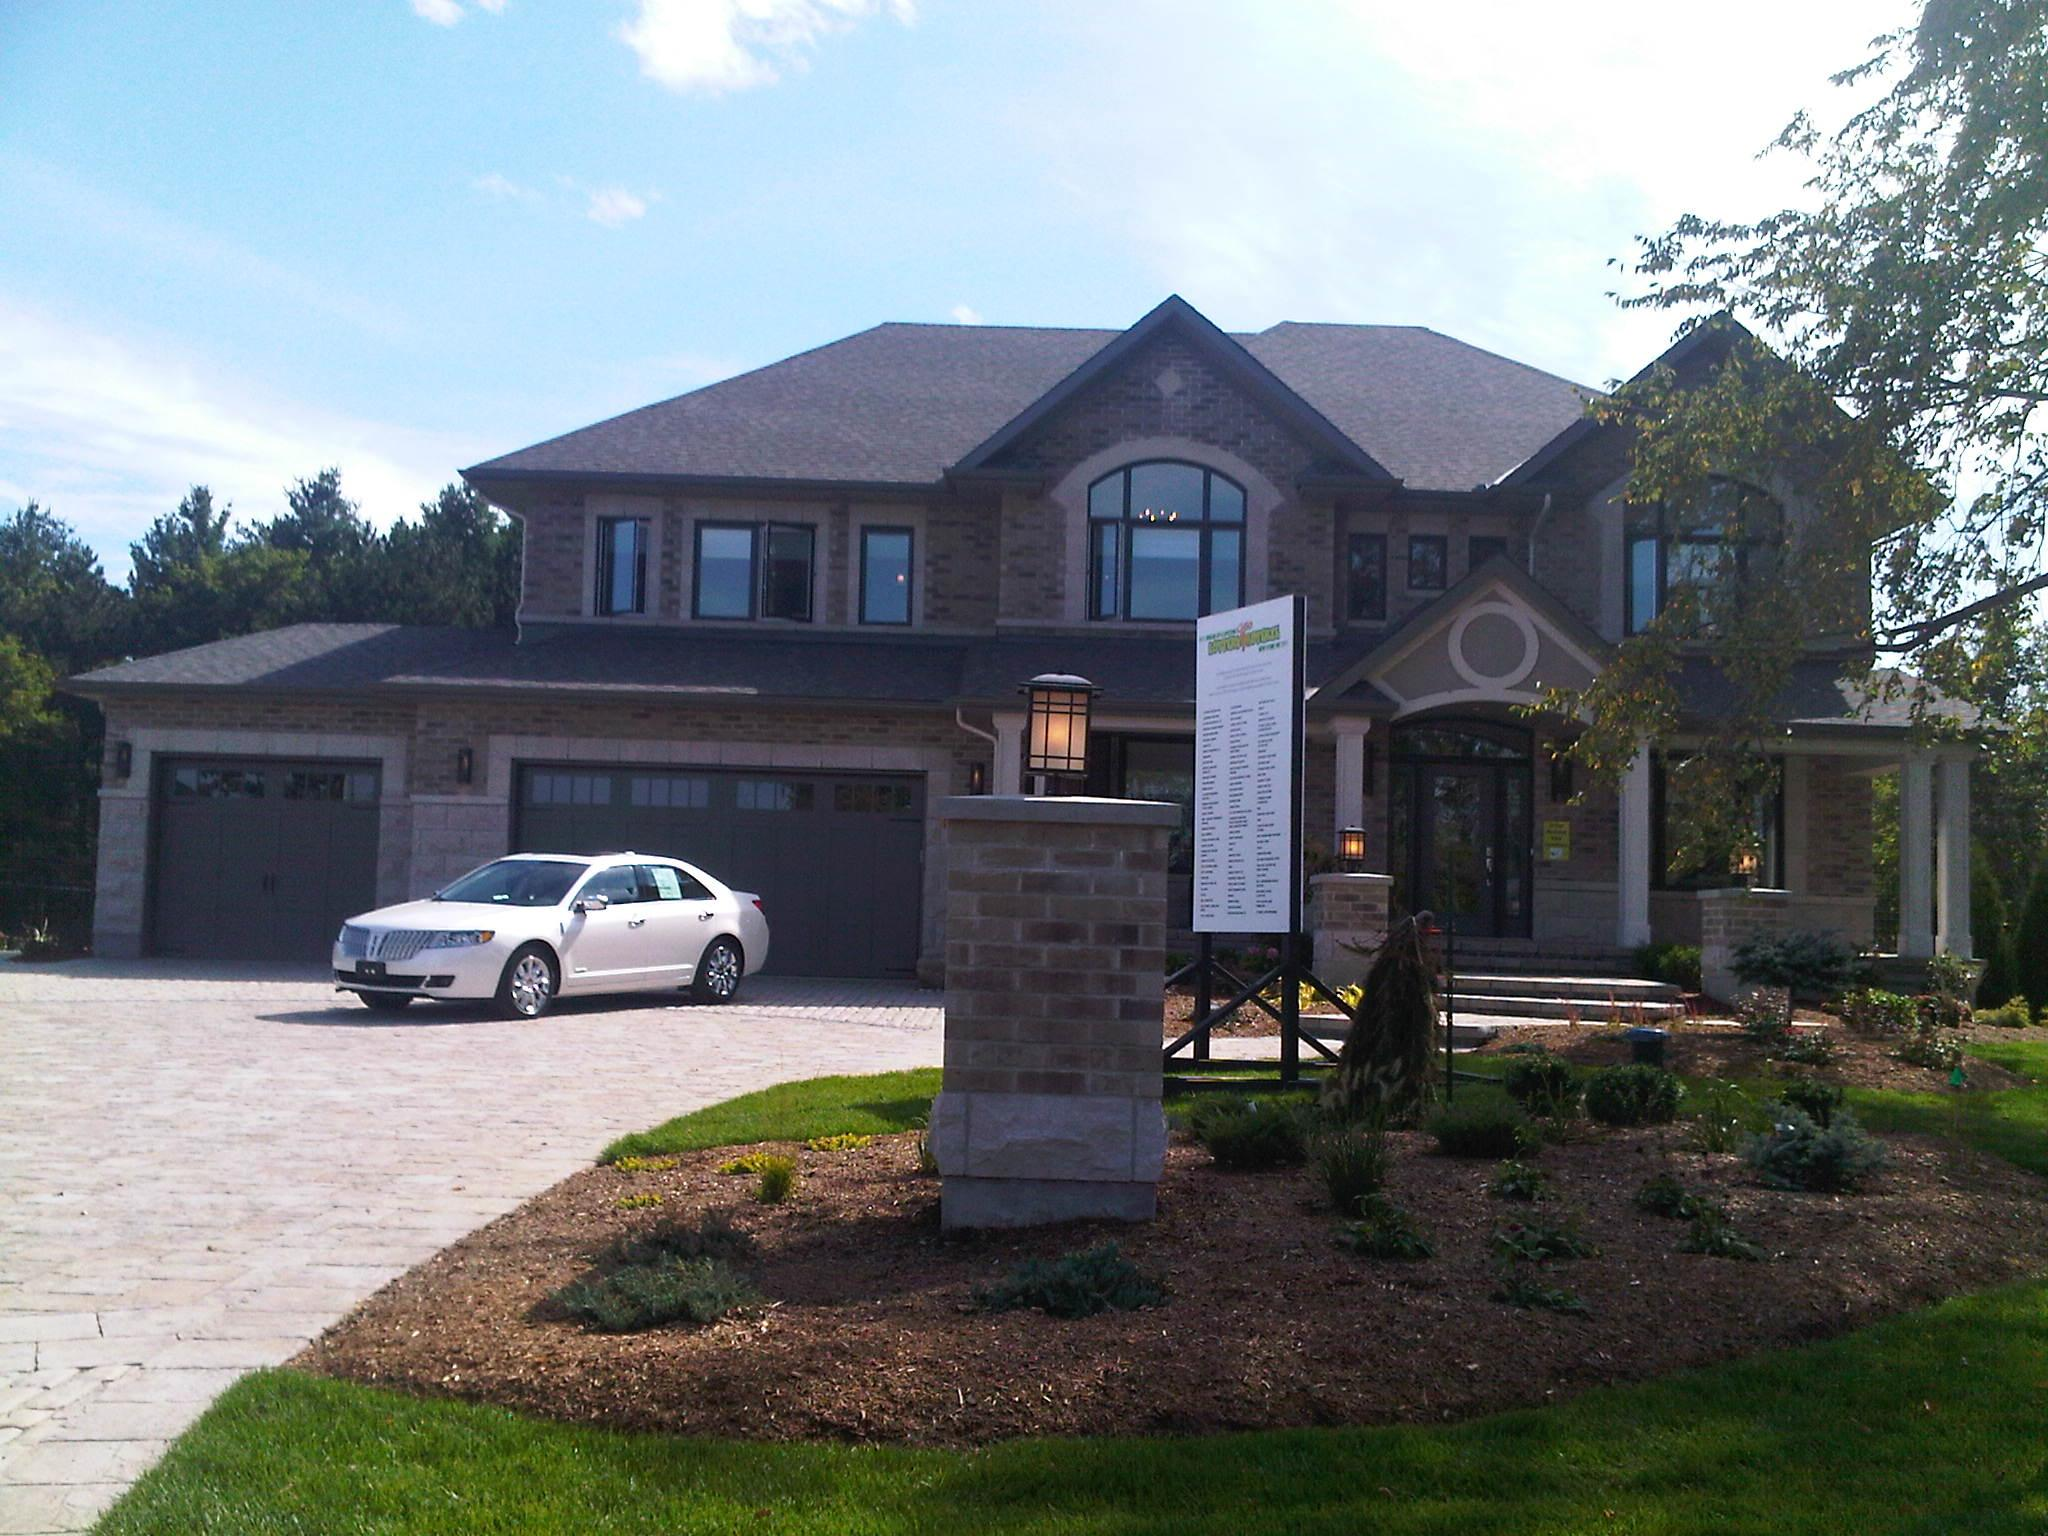 Cheo dream home pictures